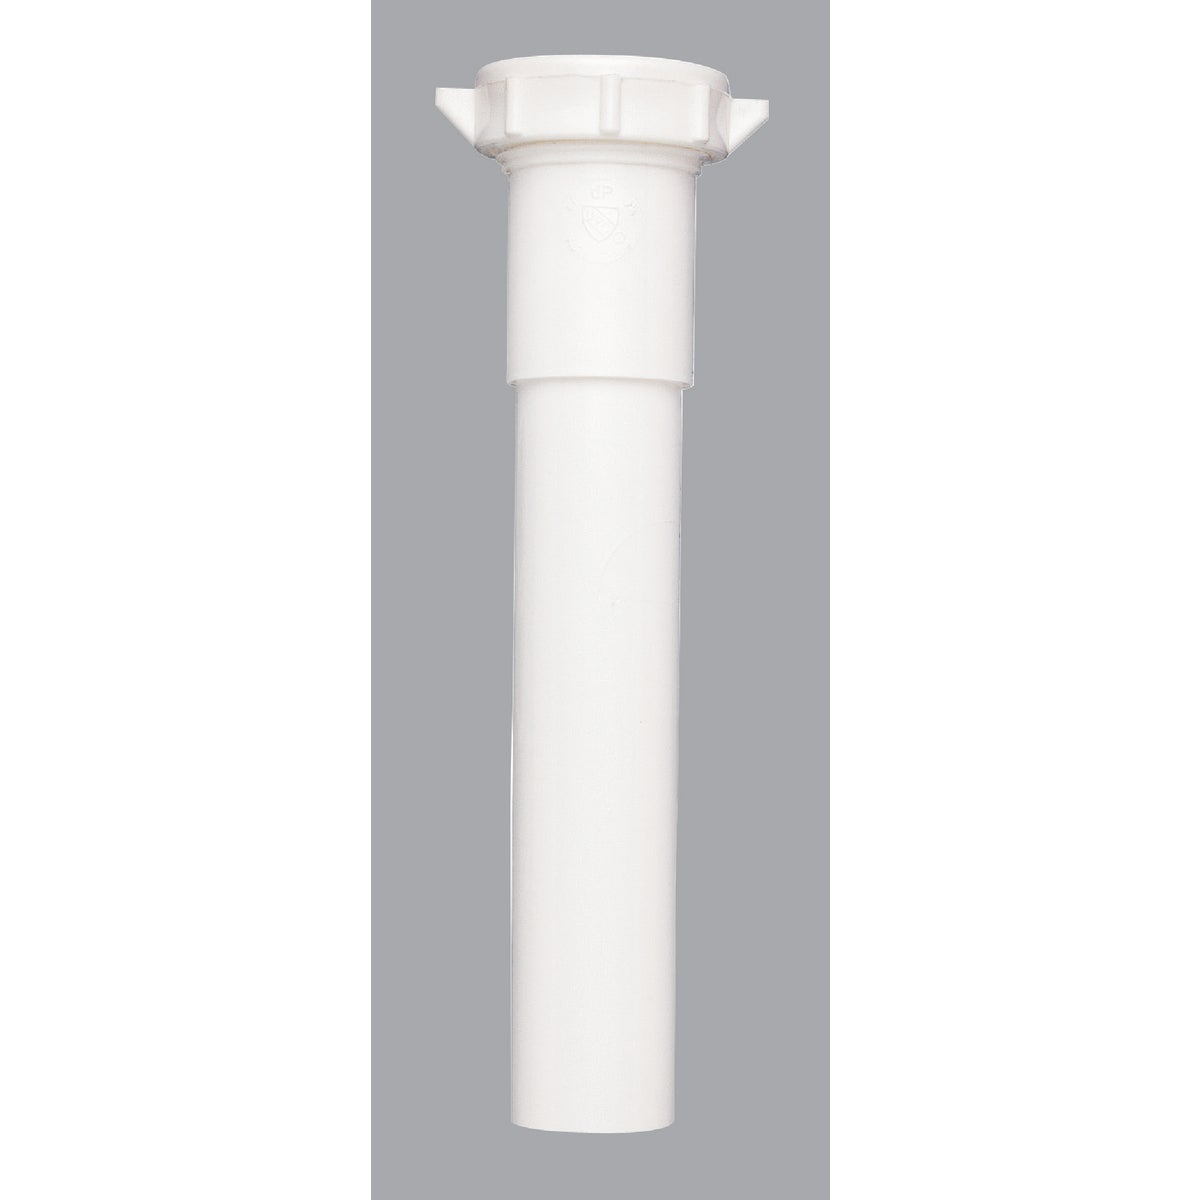 1-1/2X6 WHT S/J EXT TUBE - 40-6WK by Plumb Pak/keeney Mfg